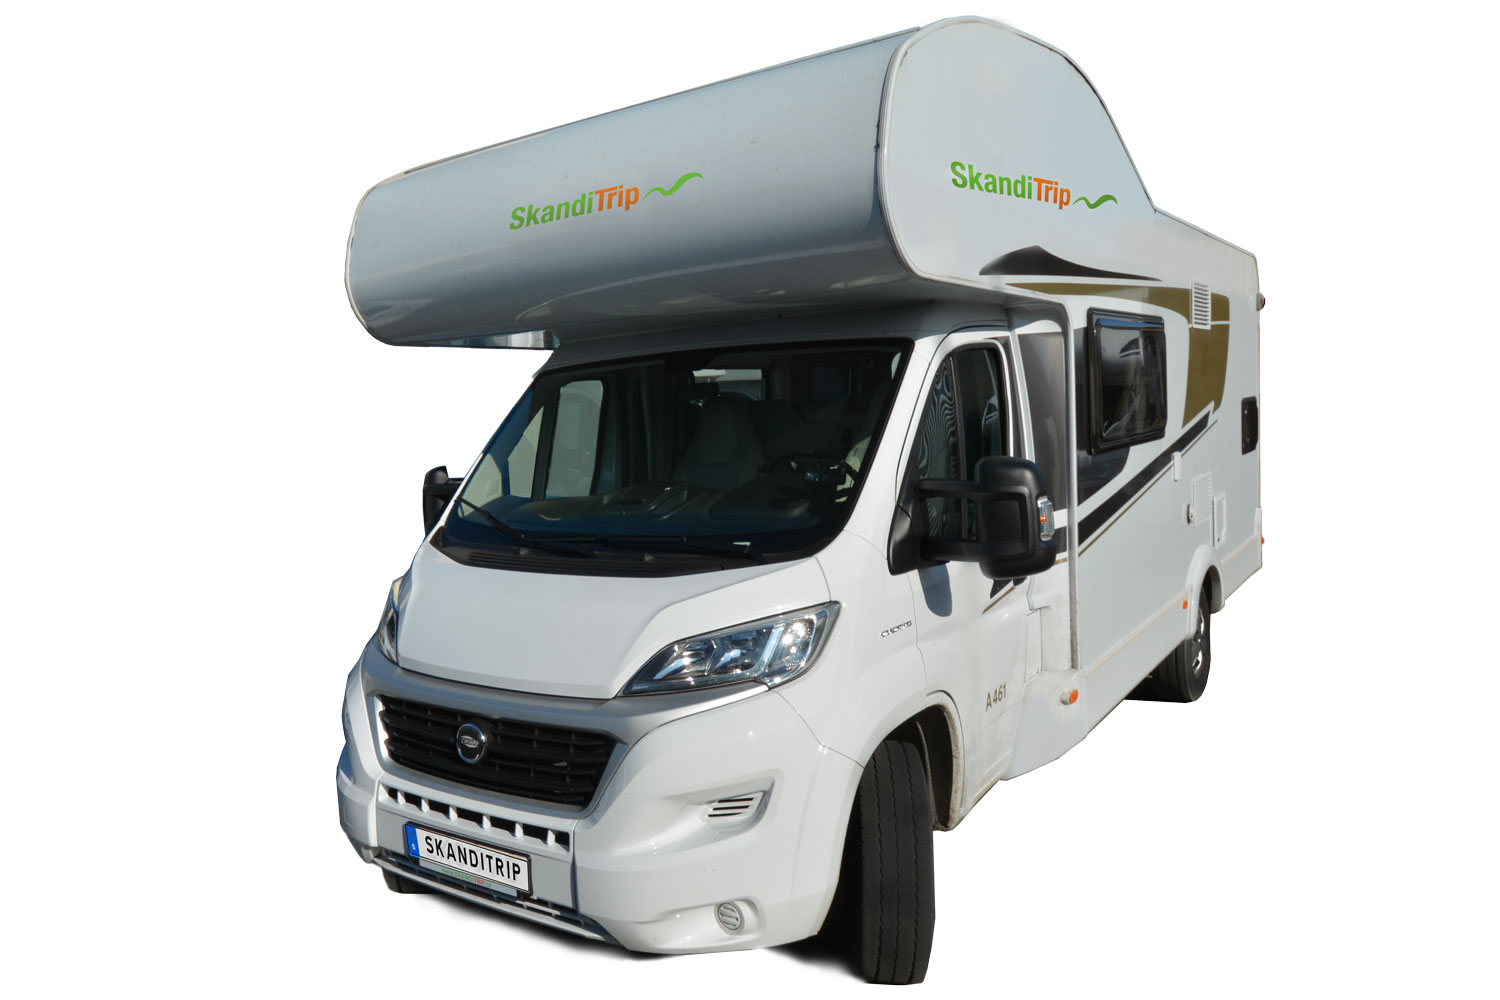 SkandiTrip family plus motorhome model